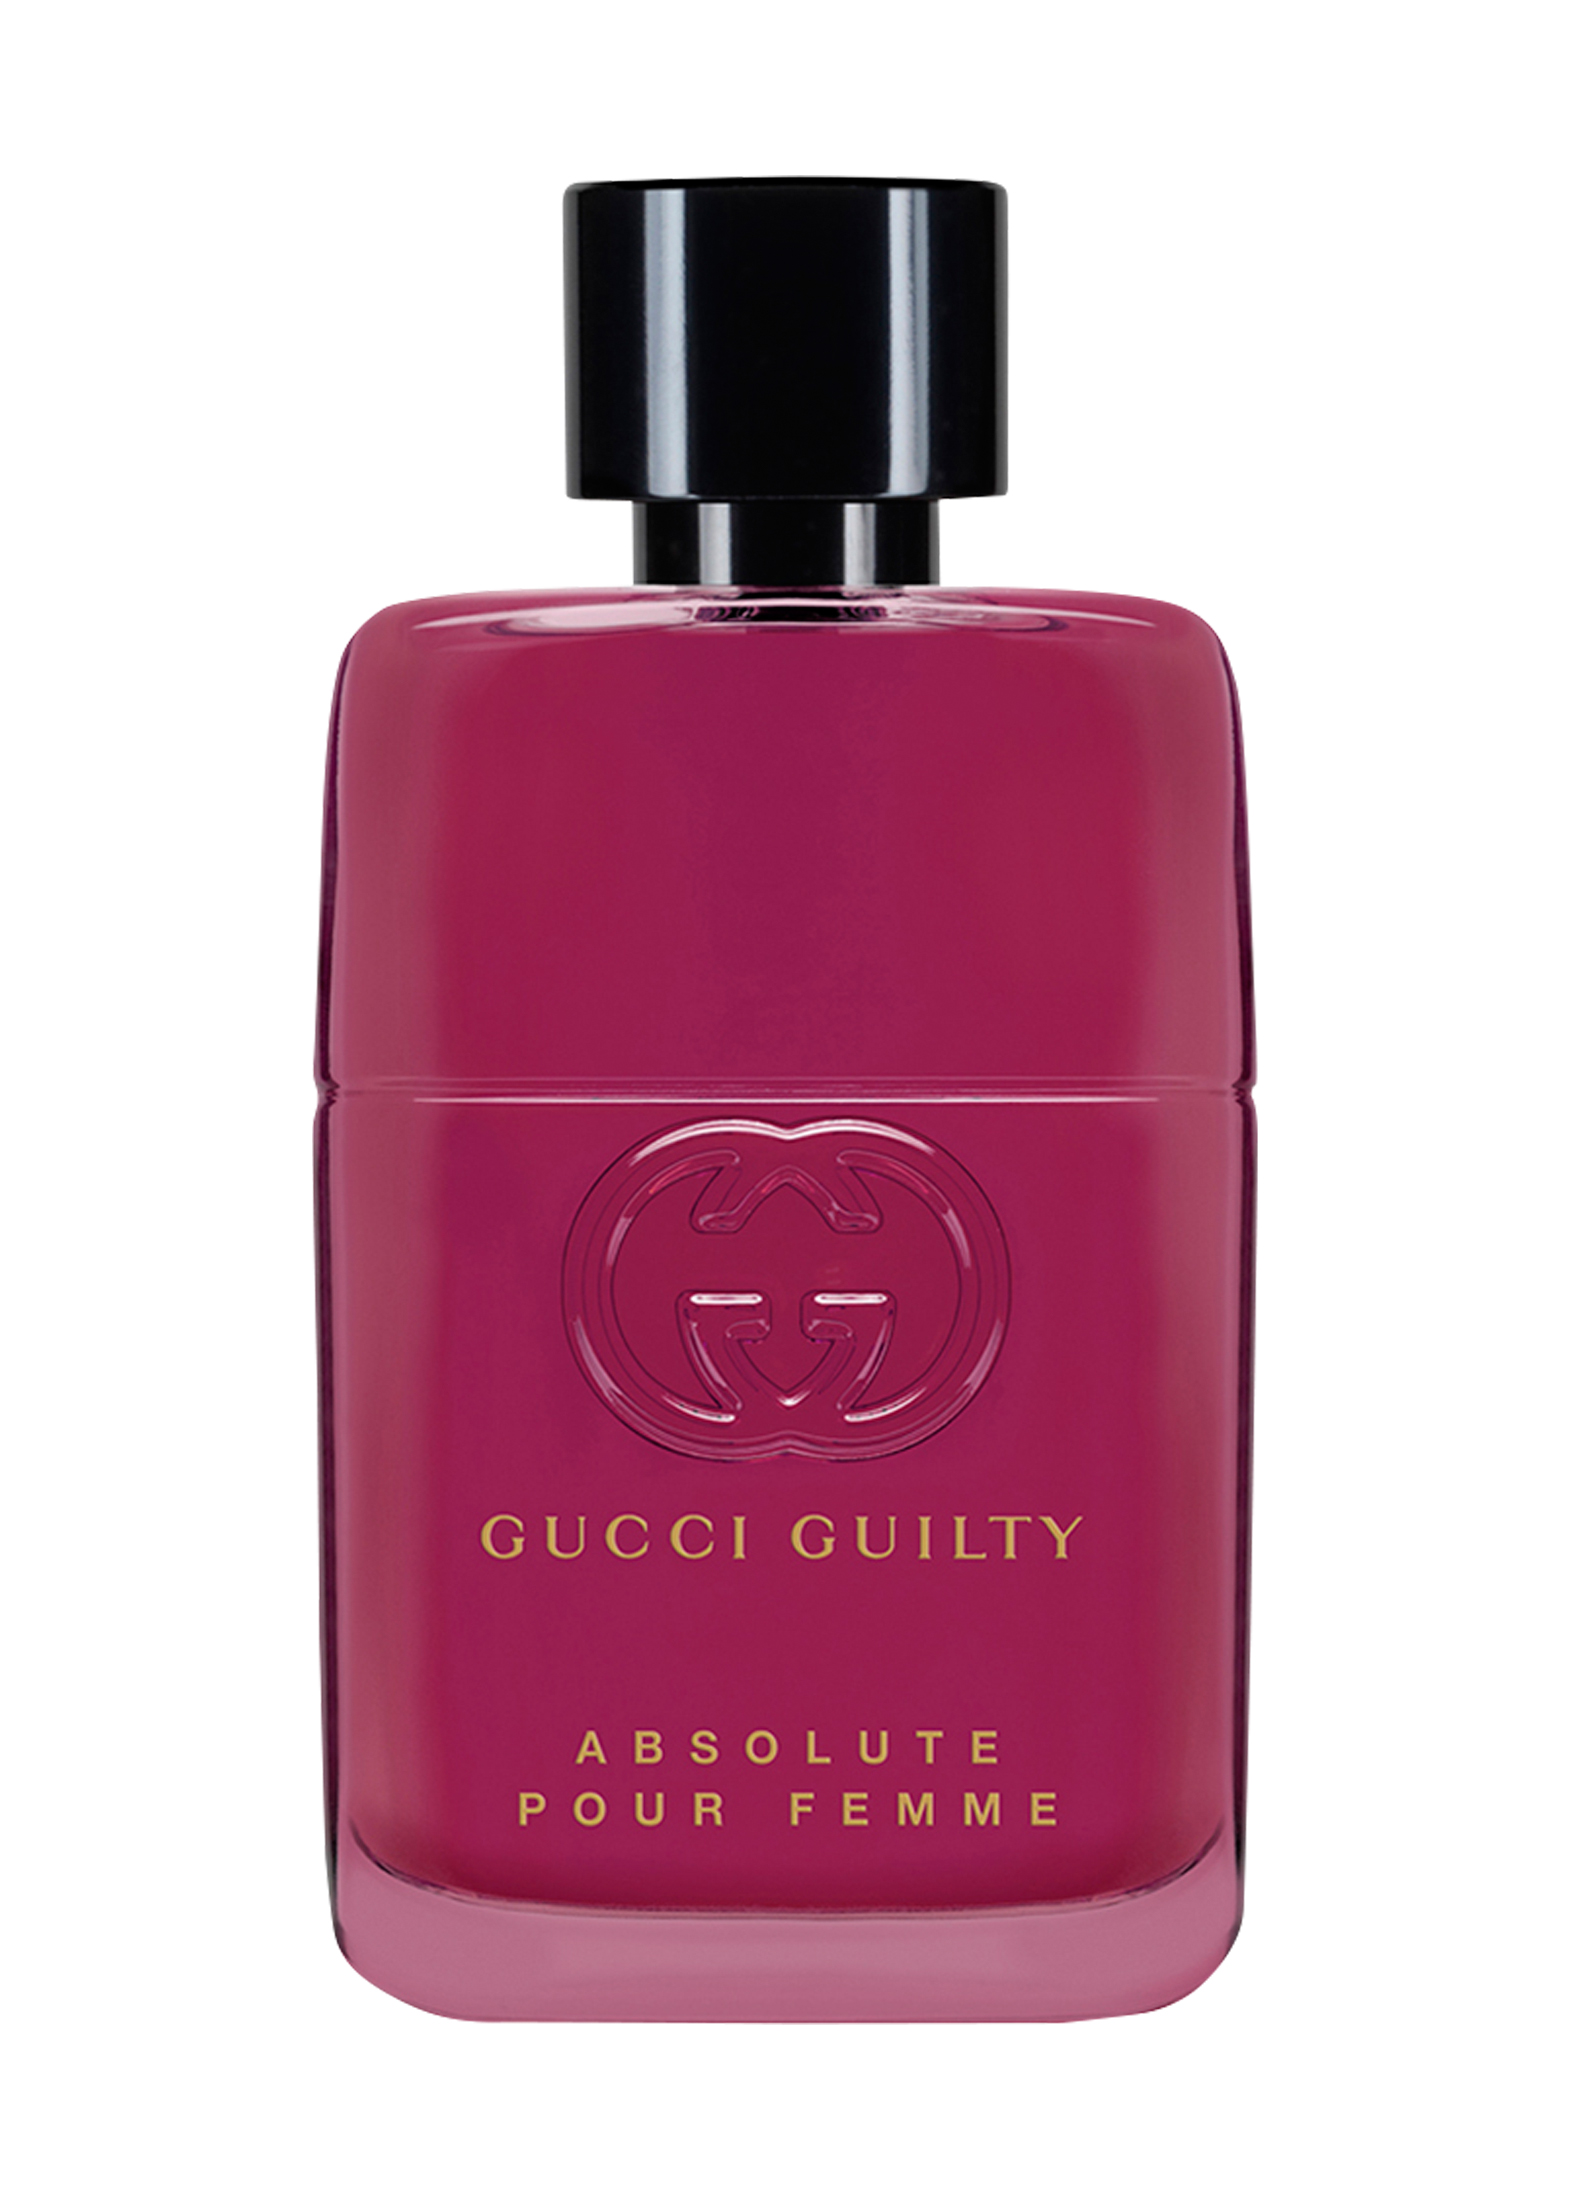 GUCCI GUILTY ABSOLUTE PF 30ML image number 0